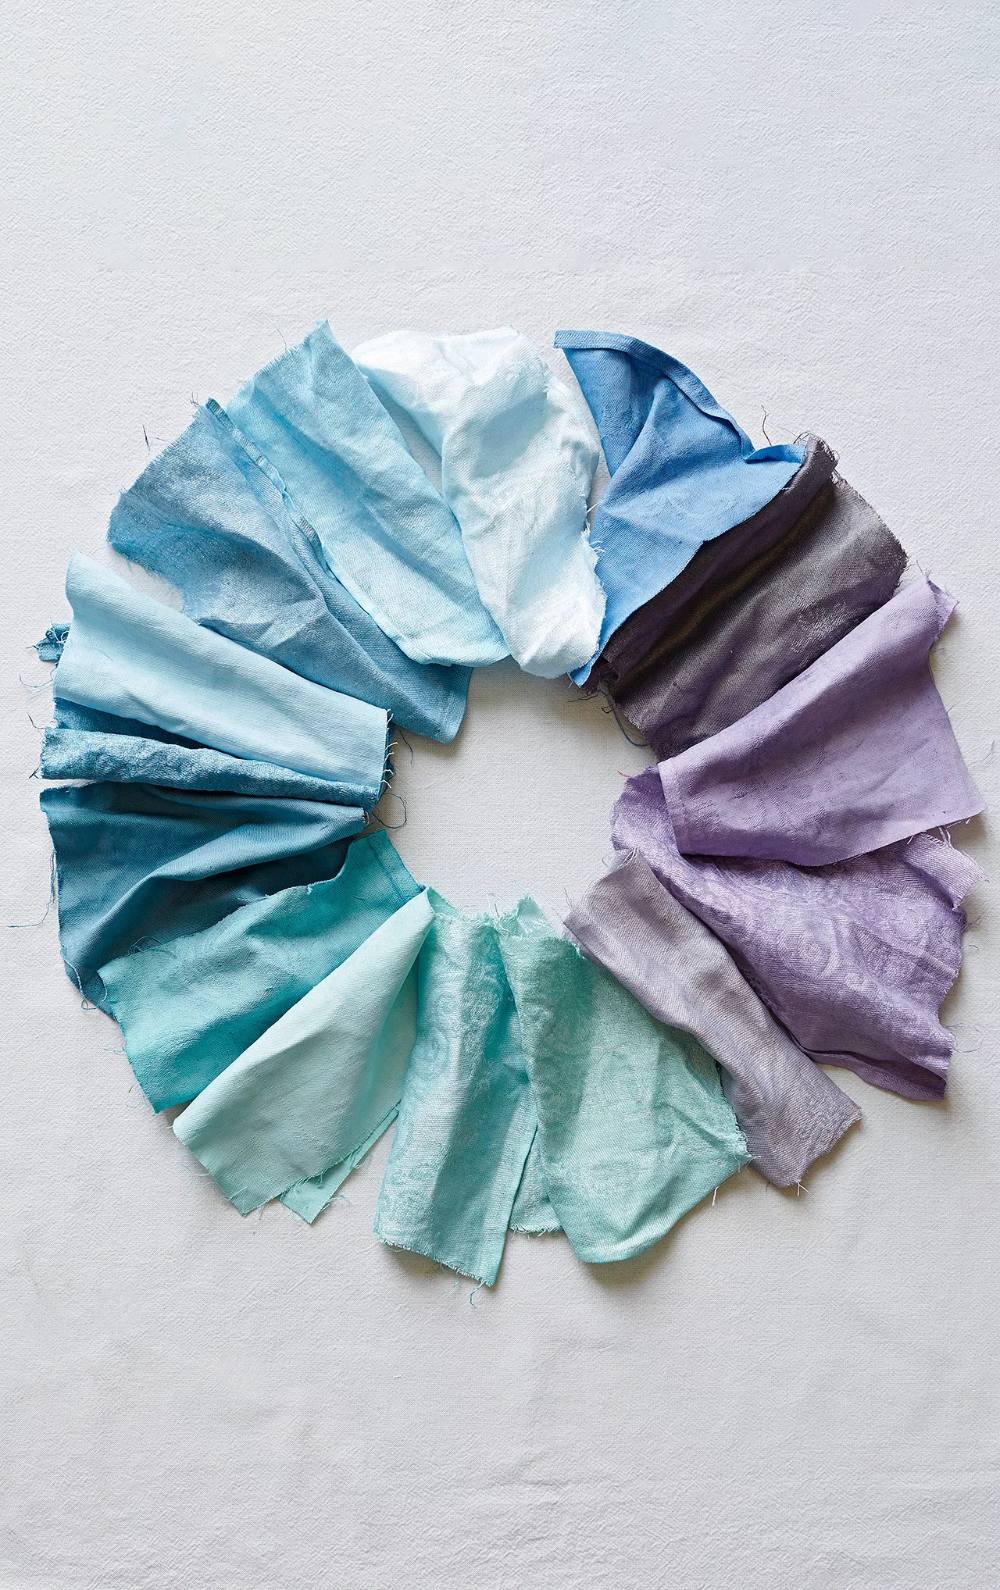 dyed cloth napkins arranged in a circle